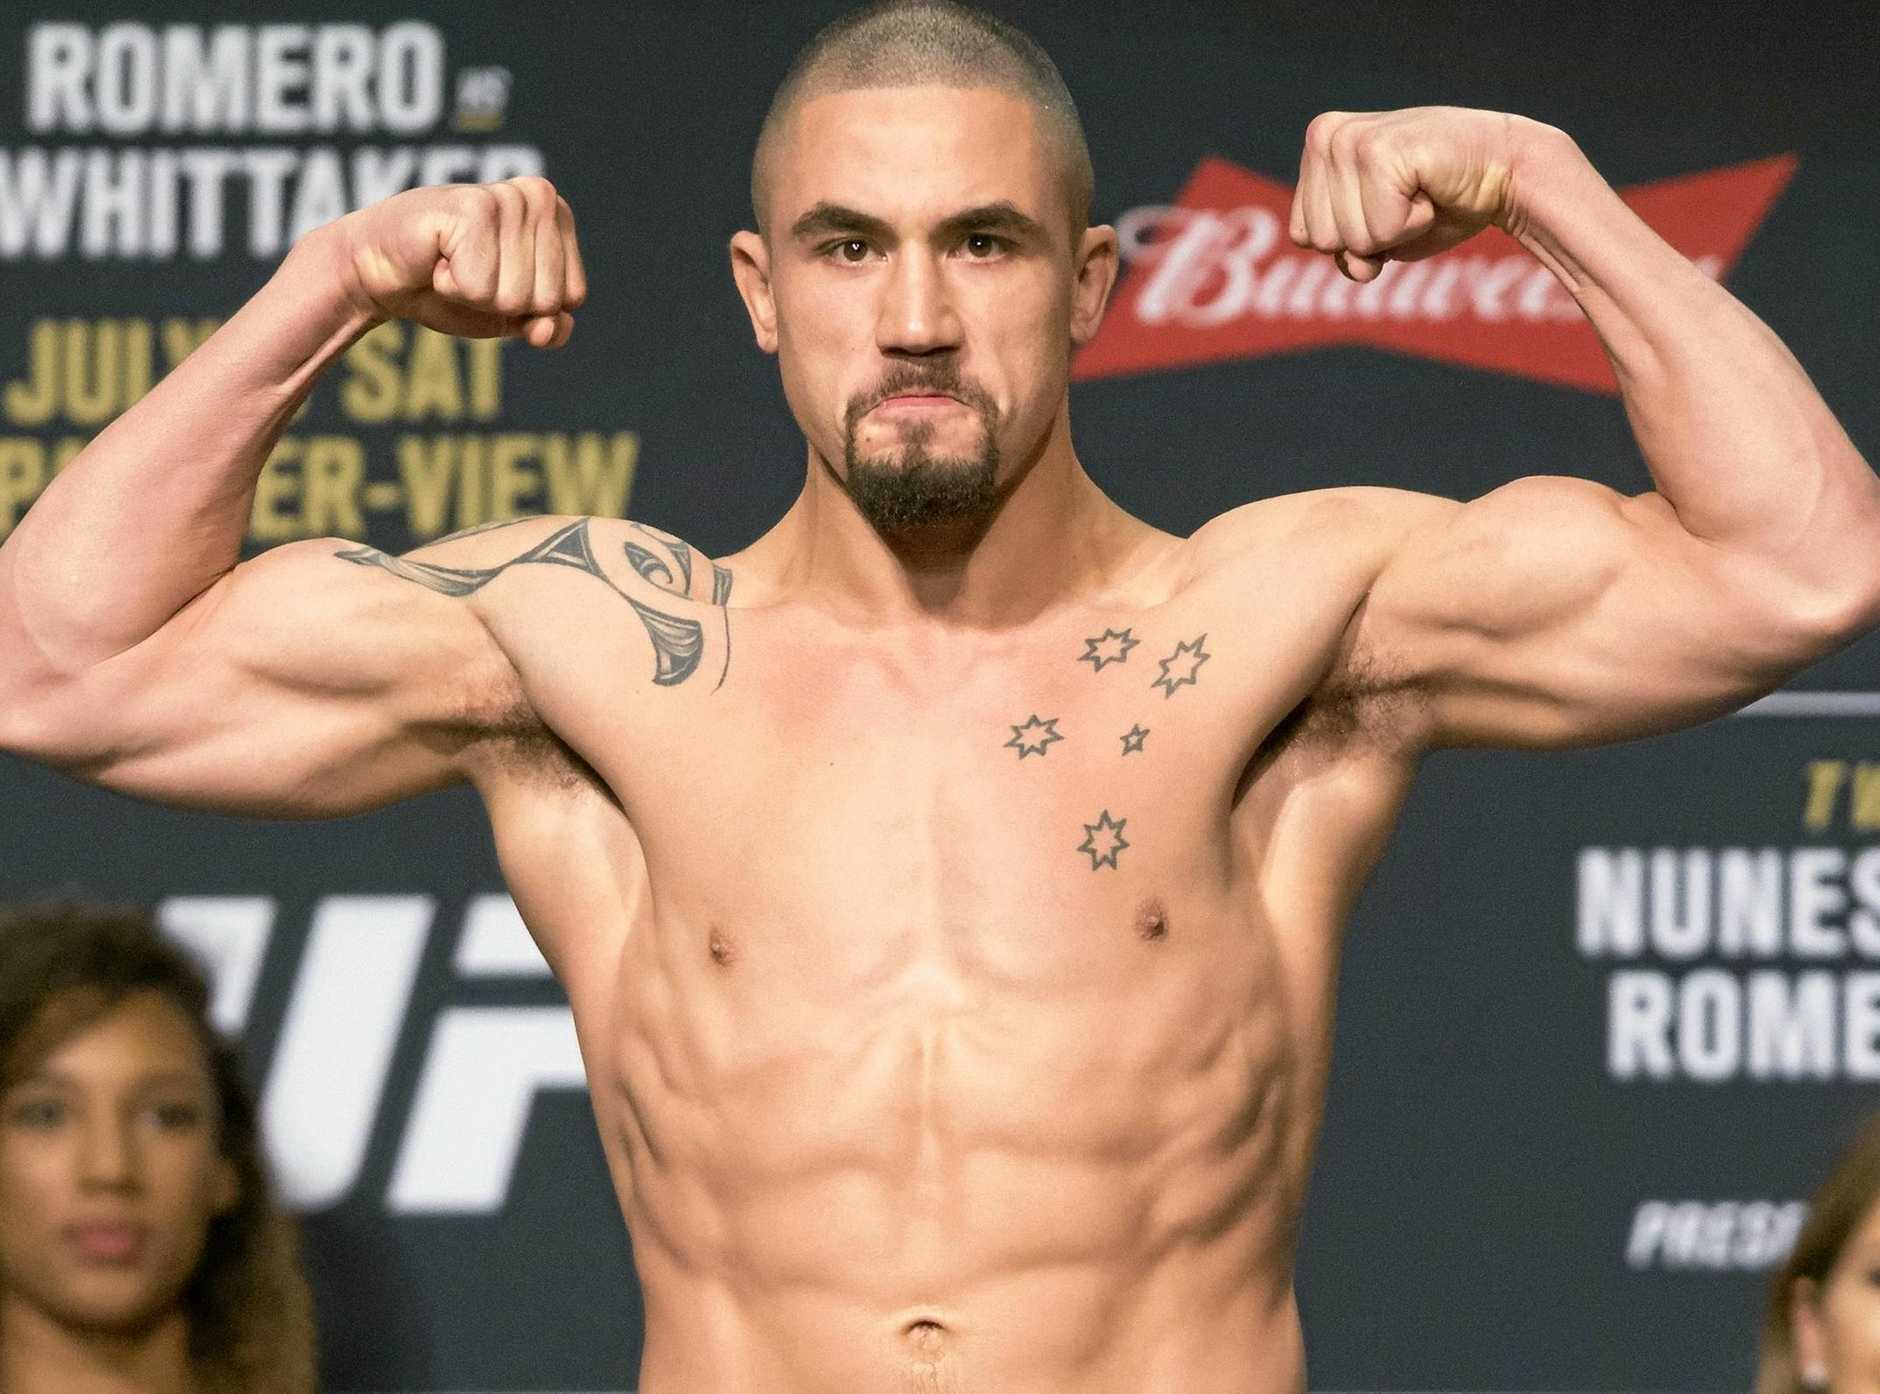 Australian Robert Whittaker poses during a UFC weigh-in in Las Vegas in July.